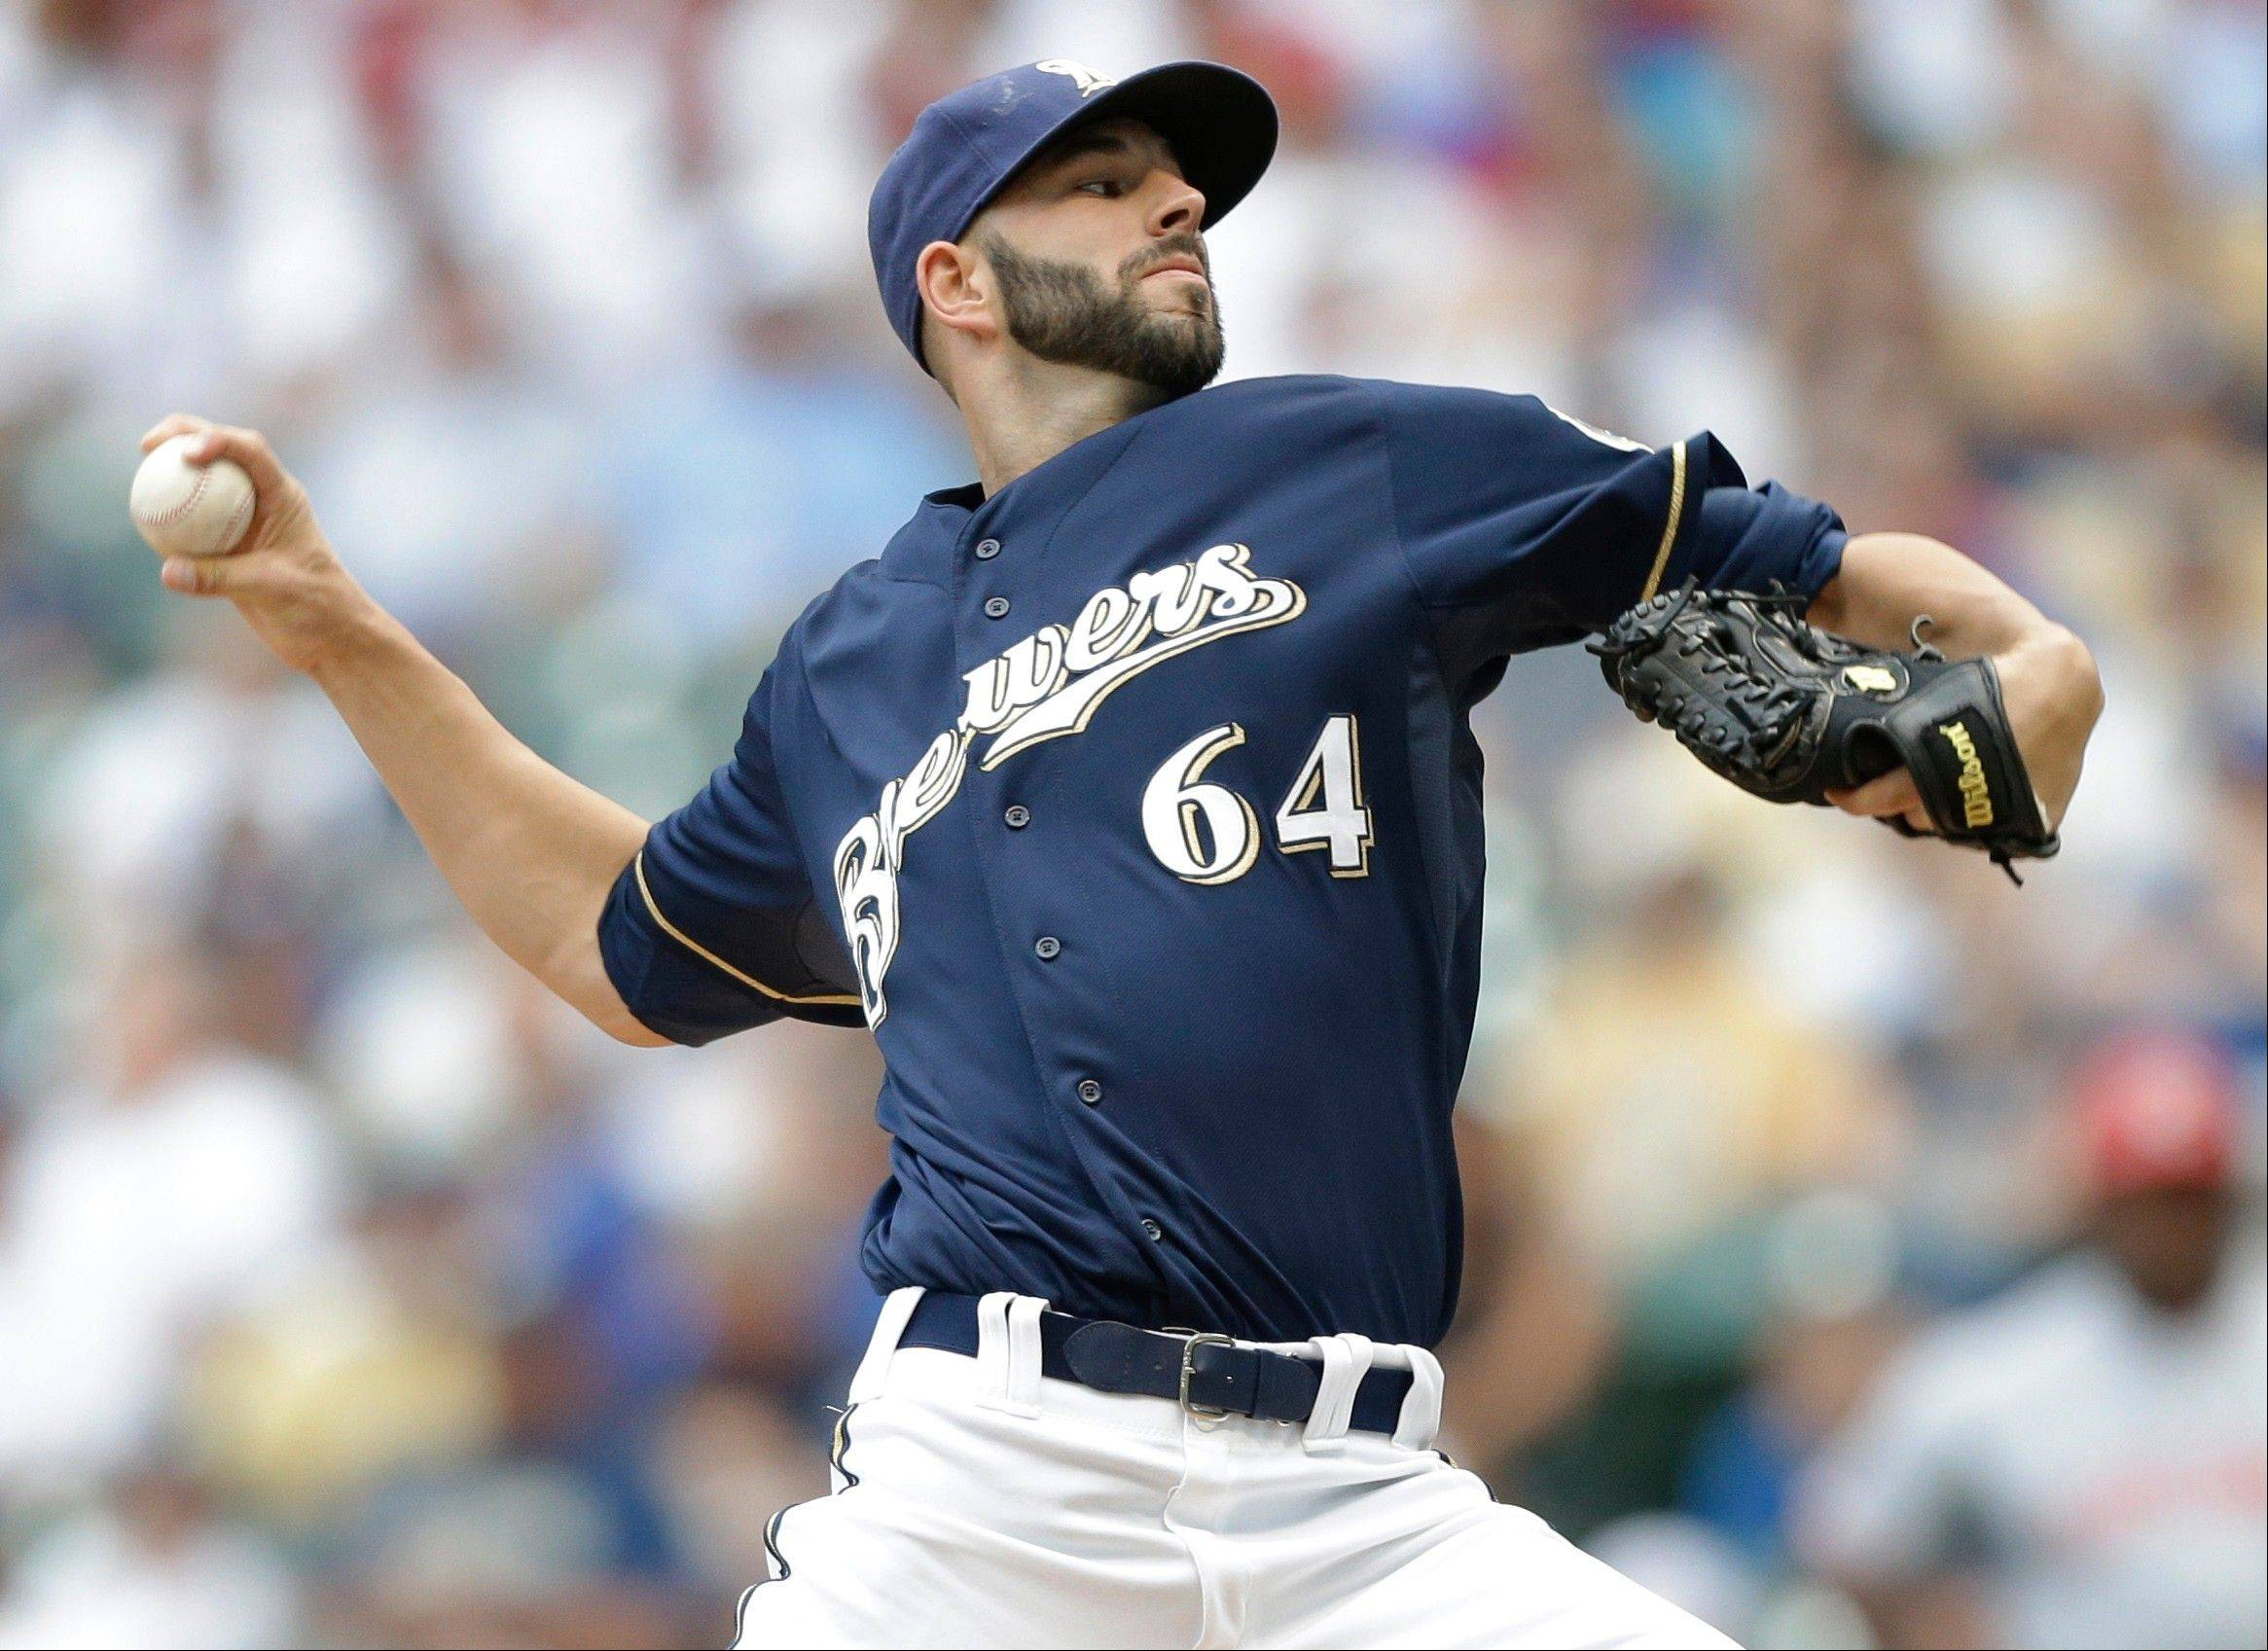 Brewers starting pitcher Mike Fiers hasn't allowed more than two runs in any of his last nine starts, racking up 61 strikeouts in 61 innings.